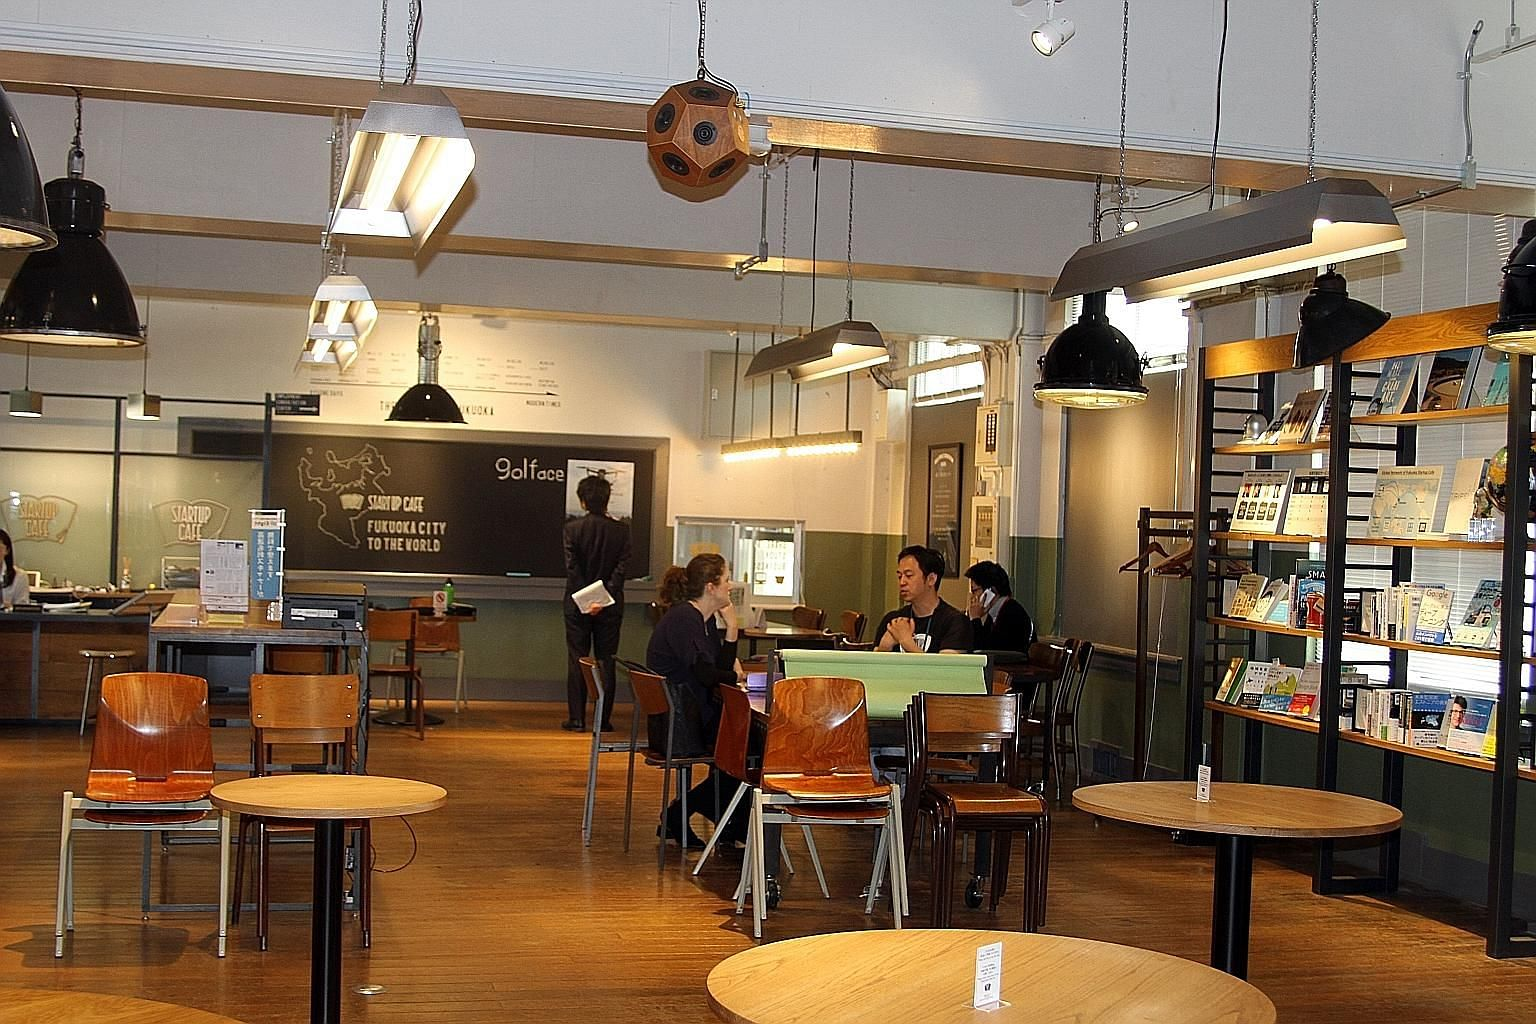 The Startup Cafe, run by the Fukuoka City government, provides consultation services to budding entrepreneurs keen to launch businesses in the city.